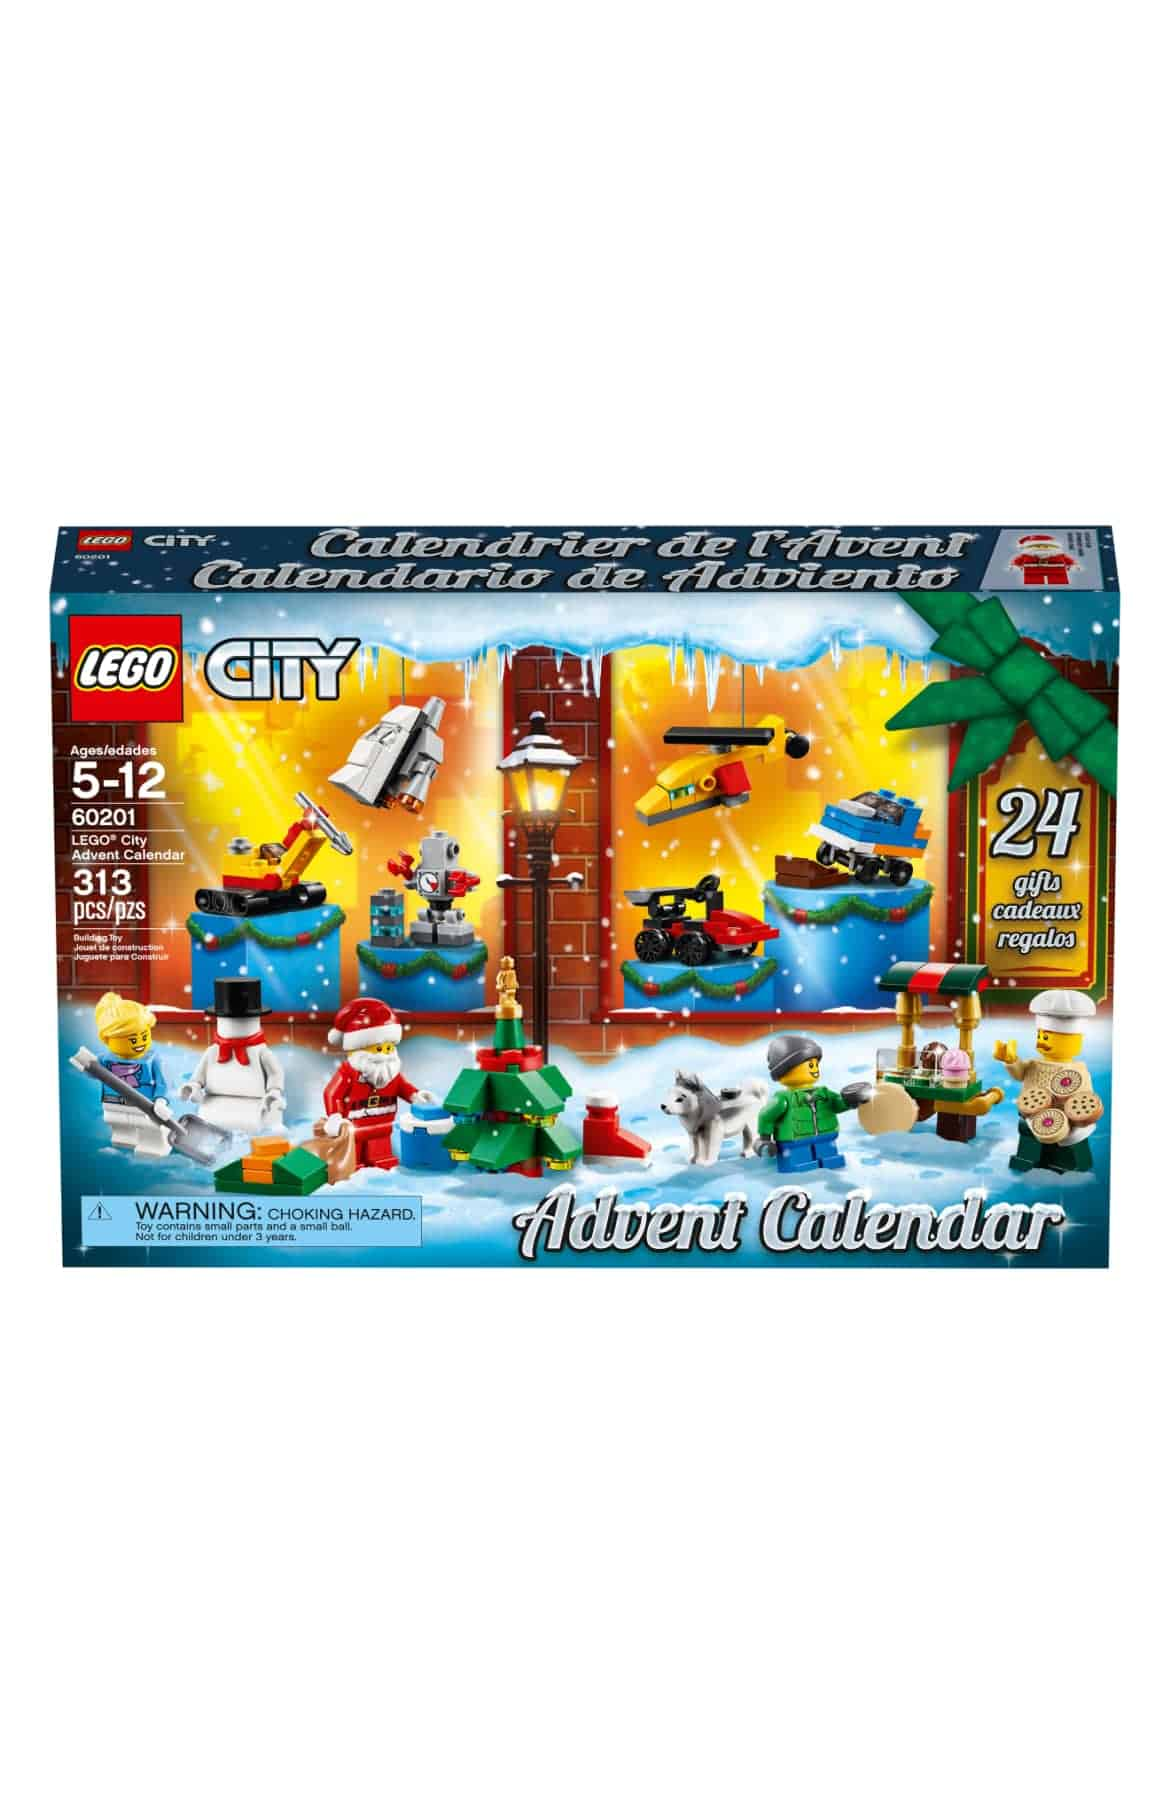 Ring in the holiday season with the fun 60201 LEGO City Advent Calendar. There are 24 different buildable presents, one for each day of the holiday season, including a space shuttle, race car, drone, robot, Christmas tree, monster truck and much more. This LEGO City set includes five LEGO mini figures and a dog figure.